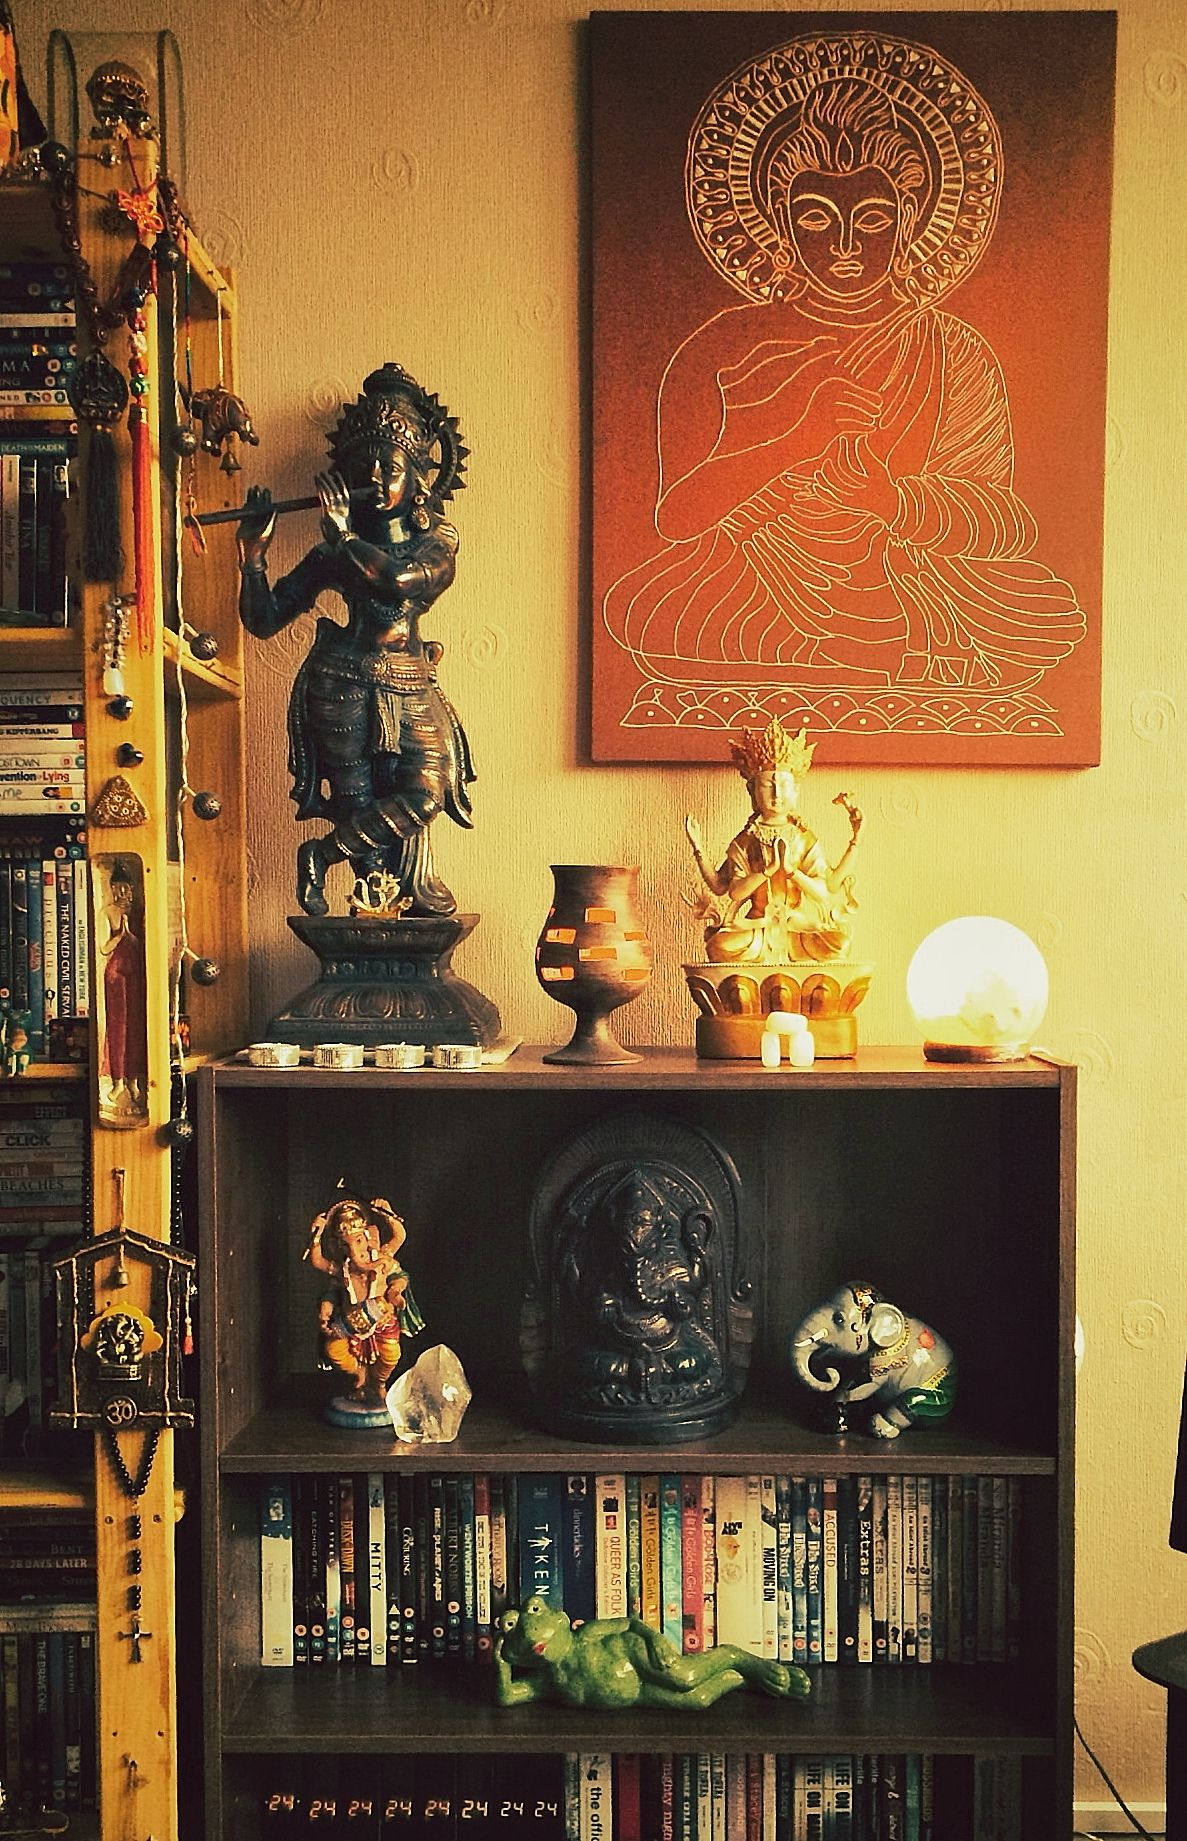 50 Indian Interior Design Ideas: Collect The Details From Our Adventures. Our Home Tells Our Story